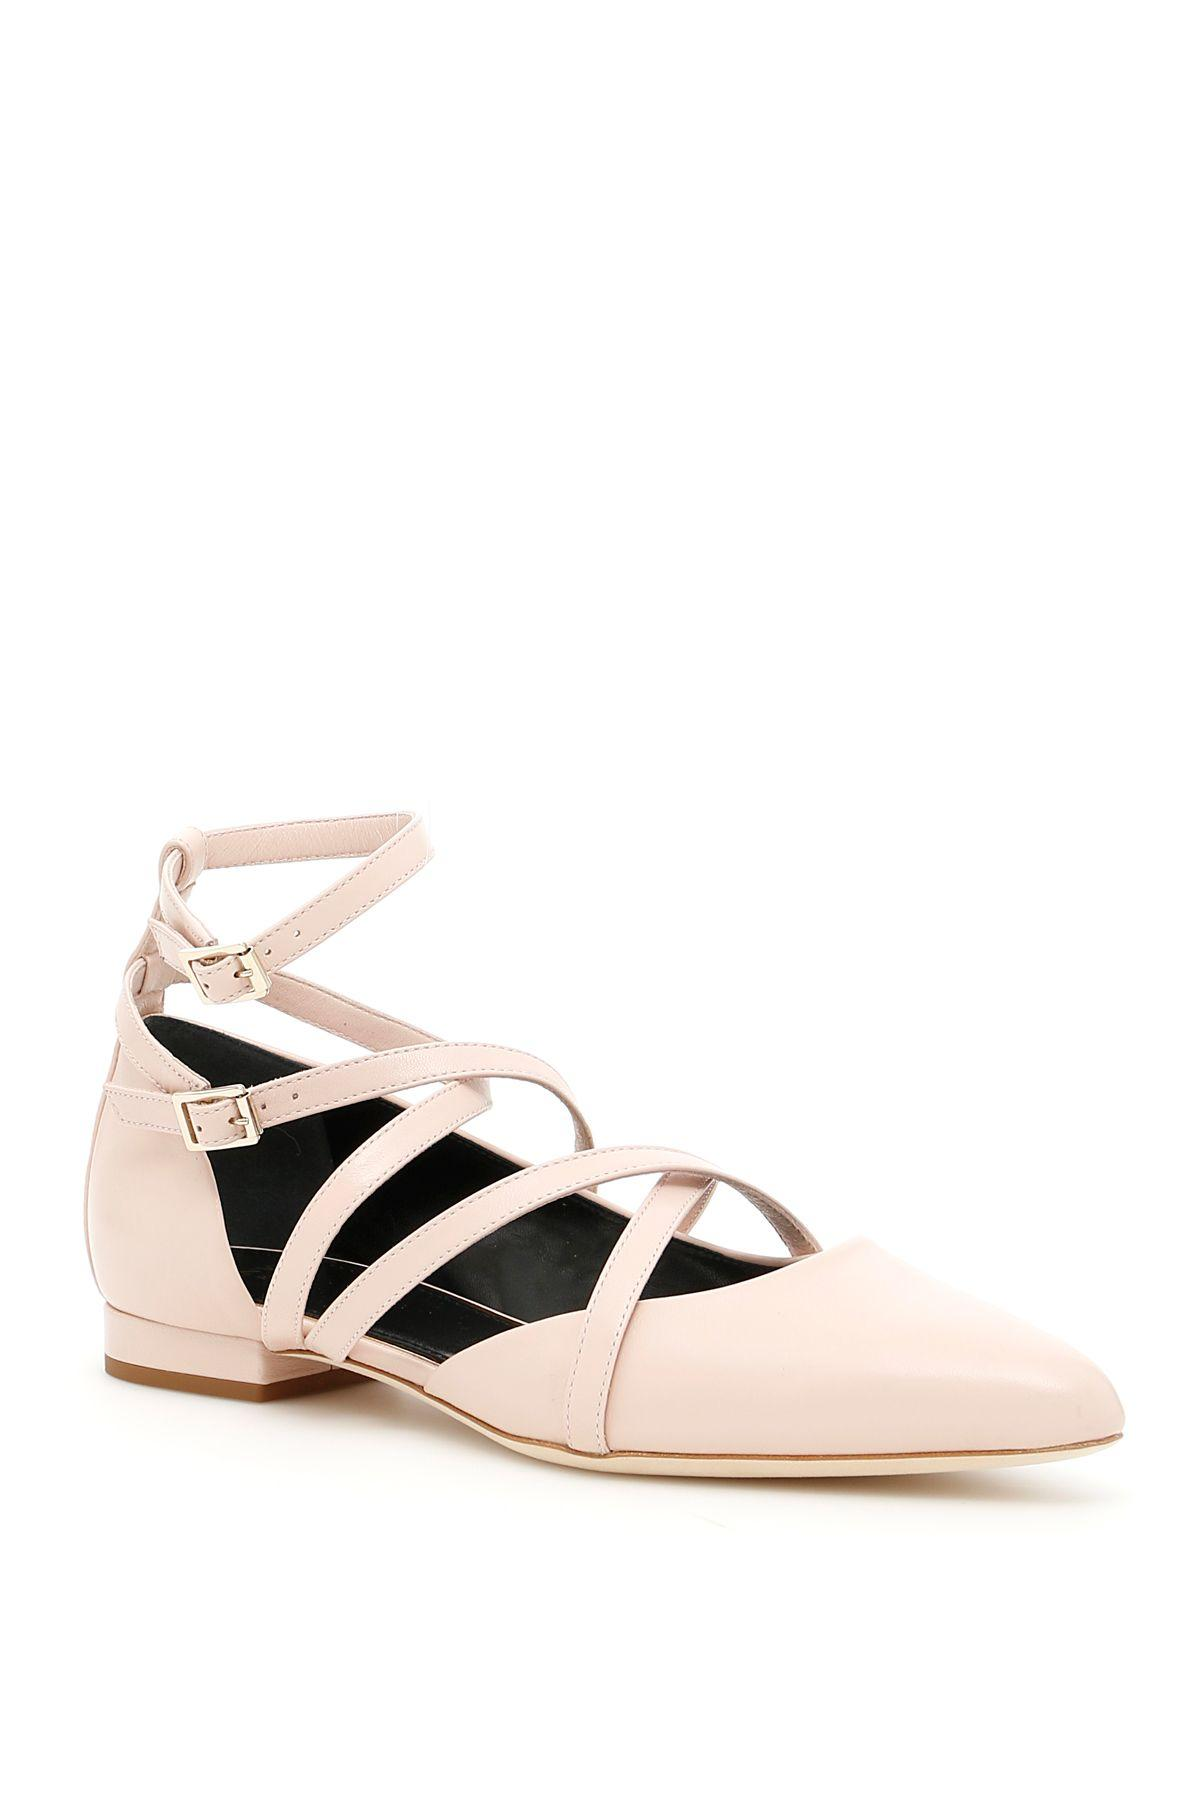 Lanvin Laced Ballerinas In Light Pinkrosa